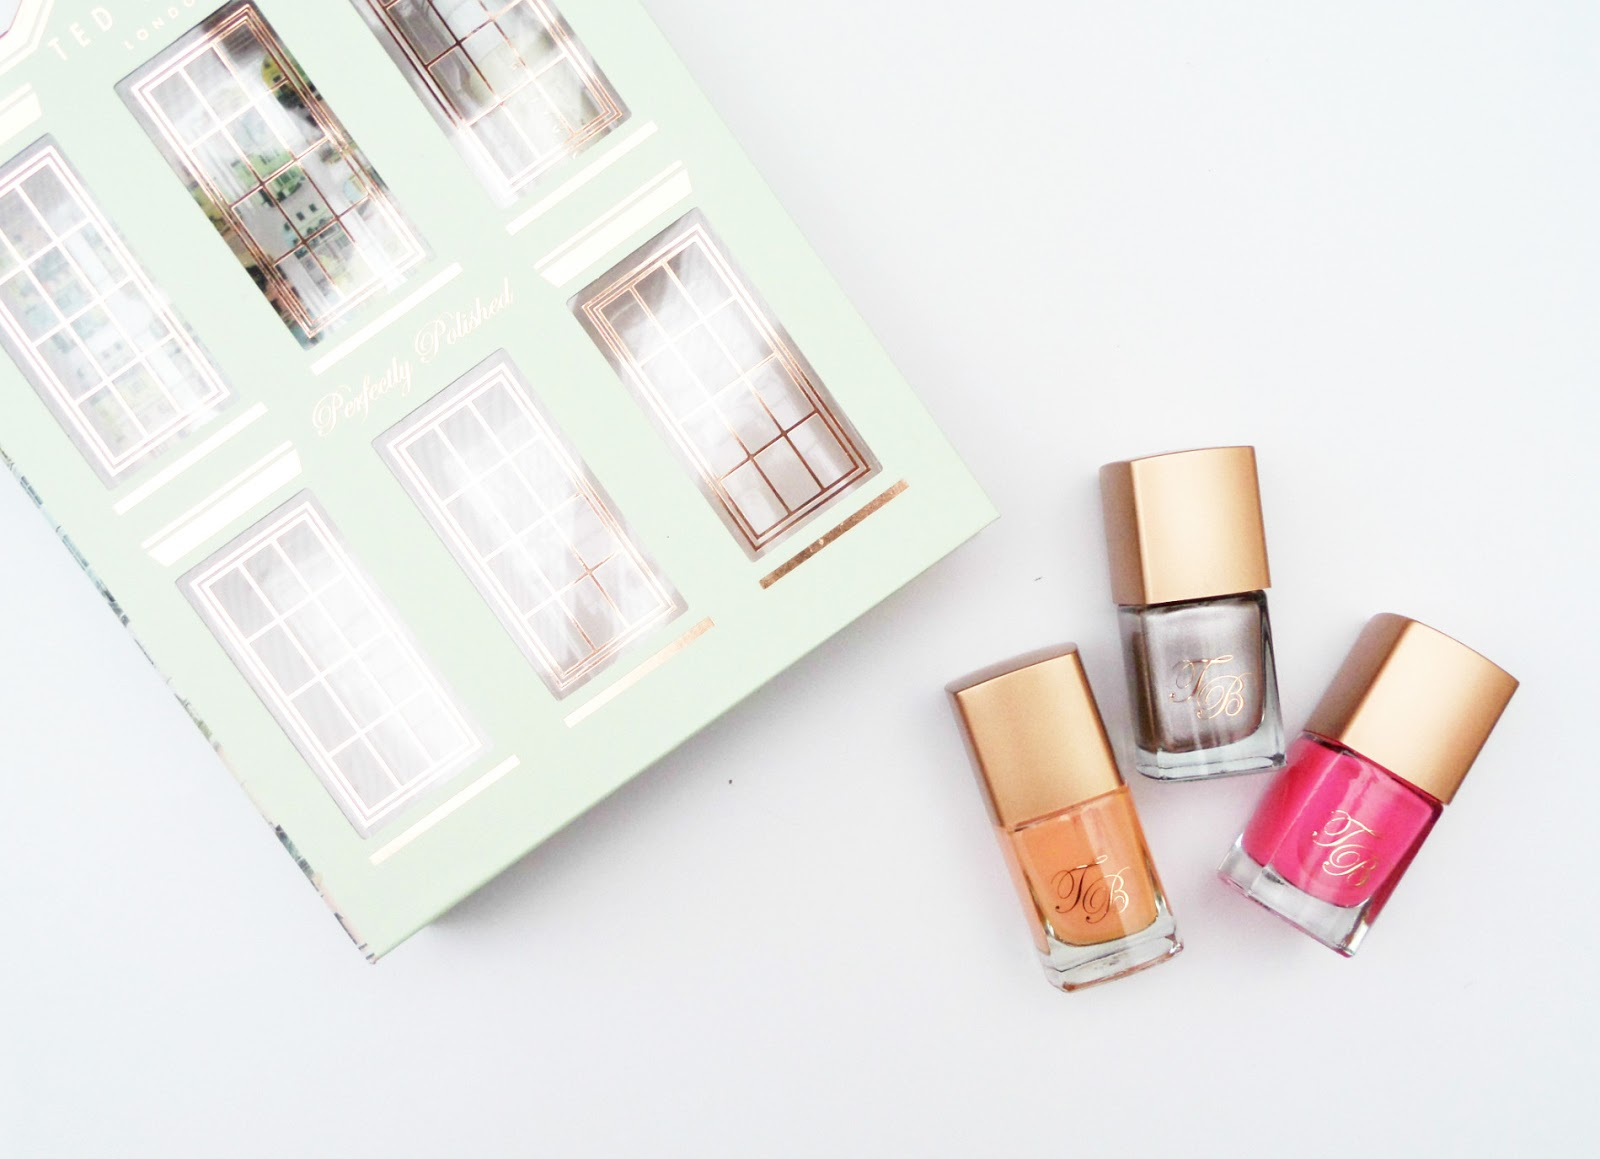 The The Ted Baker London Perfectly Polished Nail Varnish Set Review